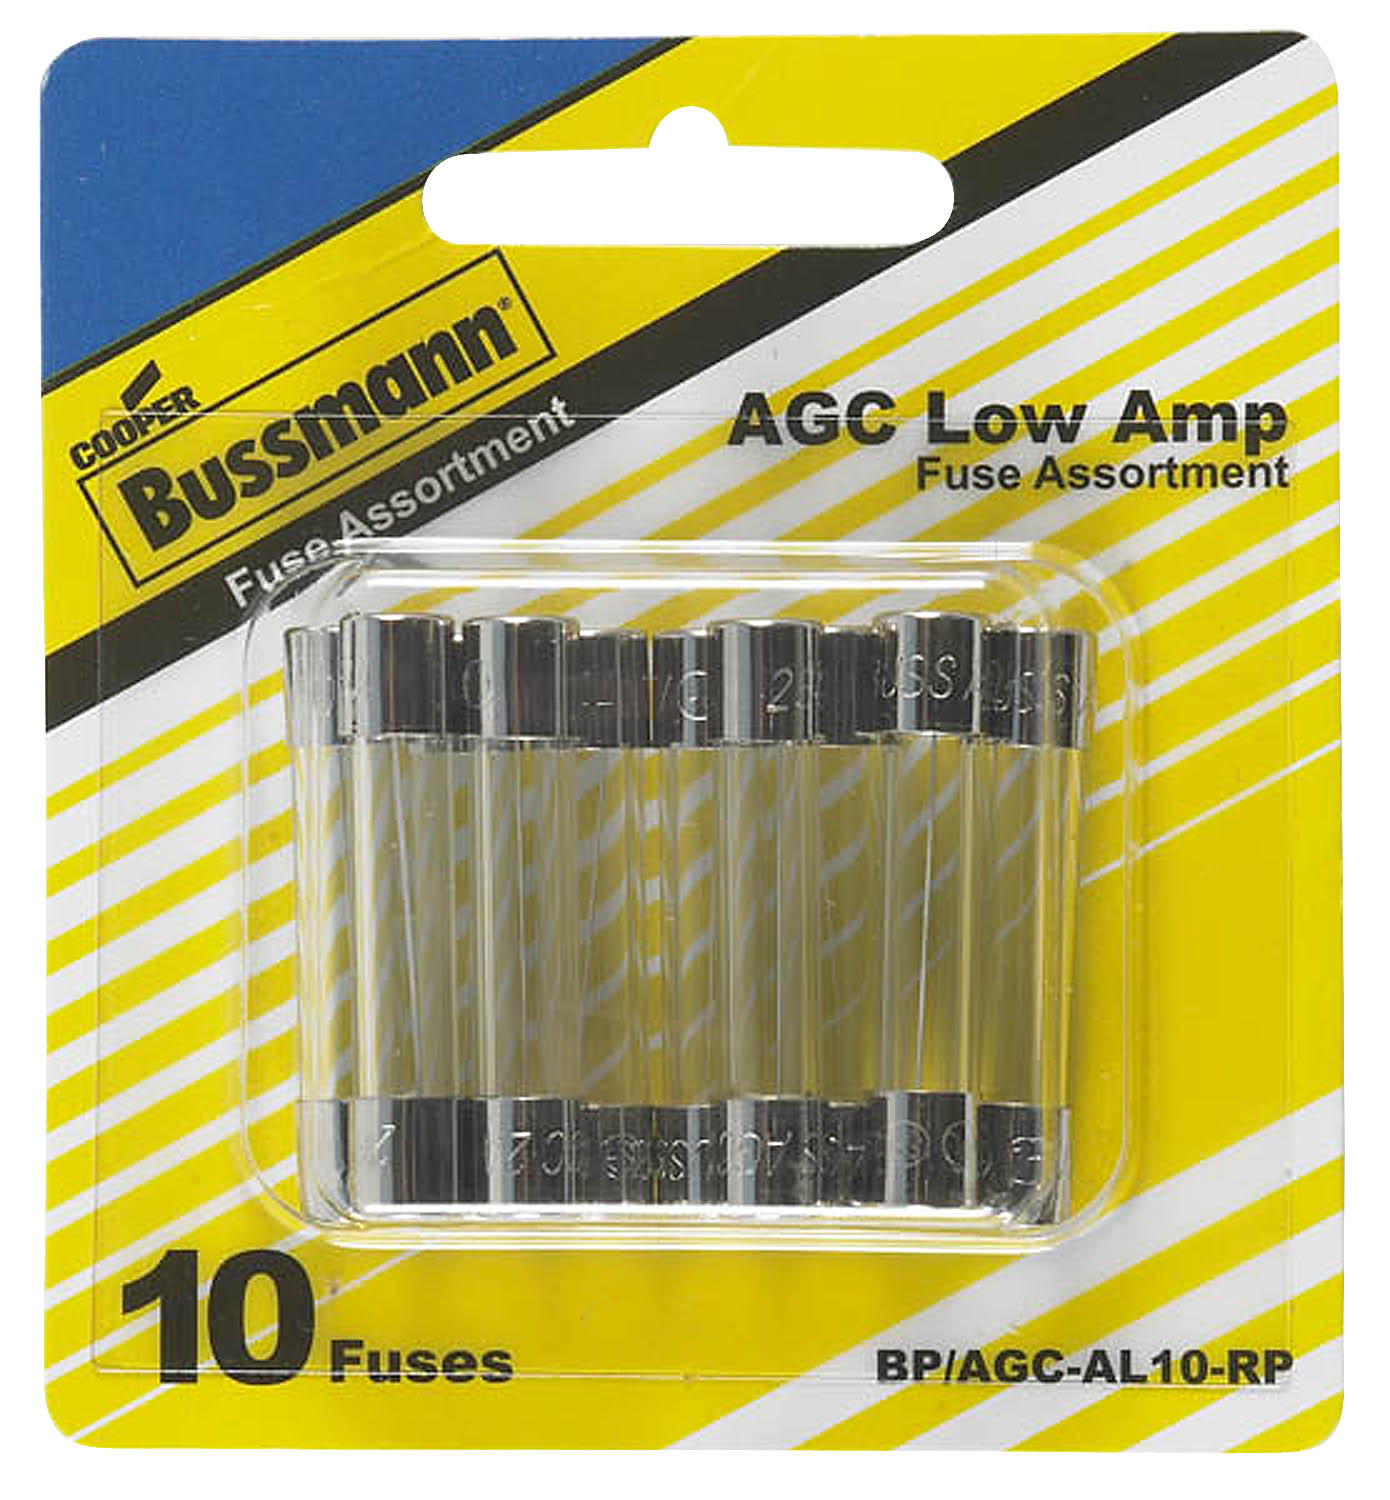 BP/AGC-AL10-RP Bussman Fuse Assortment AGC Glass Fuse